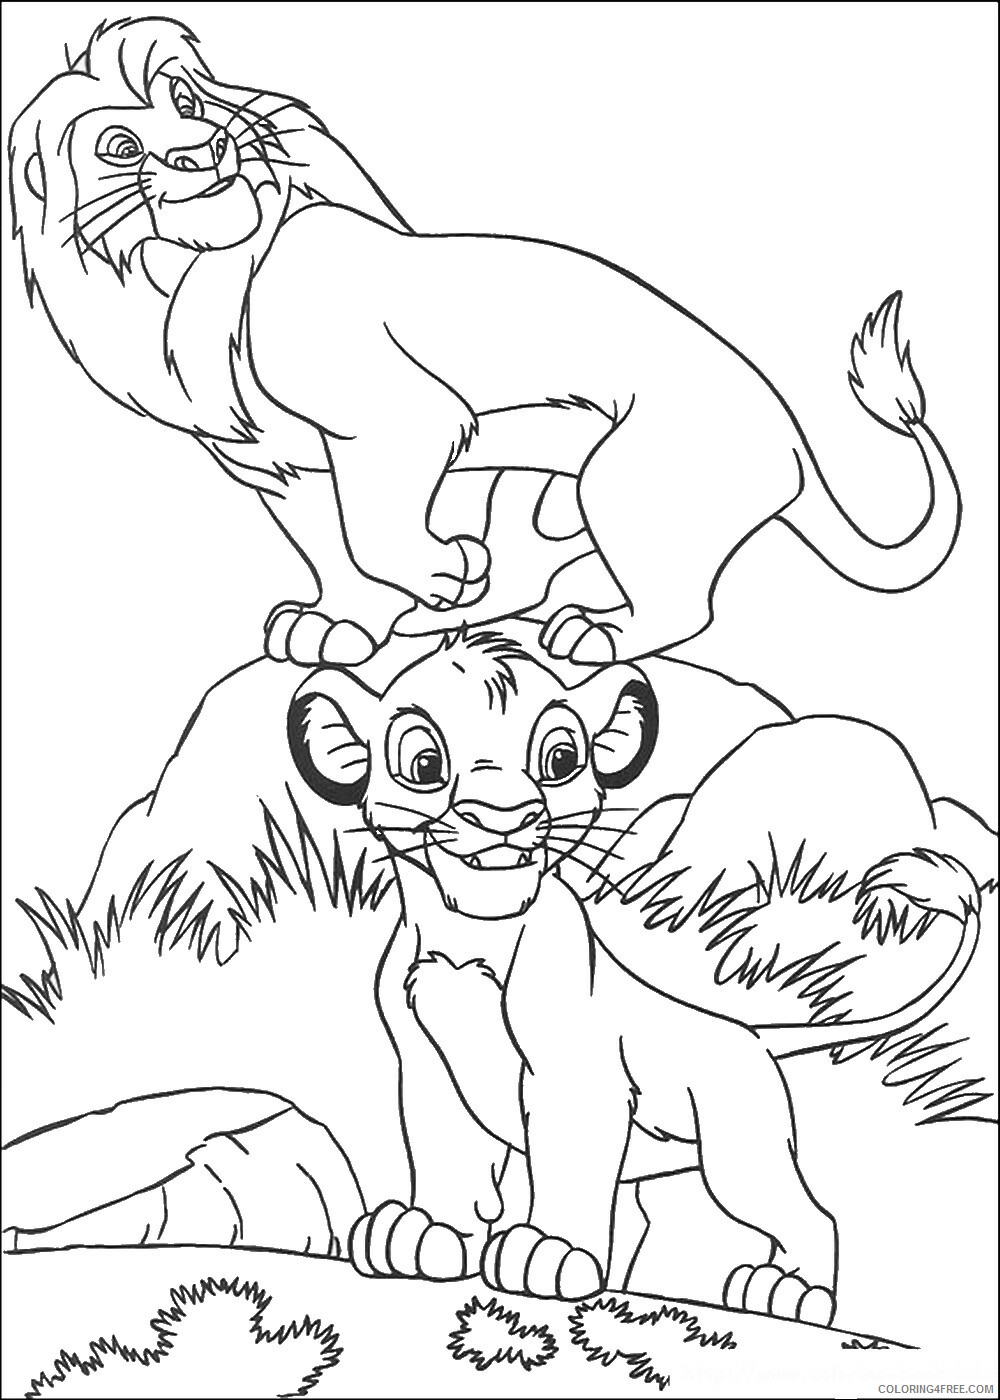 The Lion King Coloring Pages TV Film lionking_27 Printable 2020 09156 Coloring4free